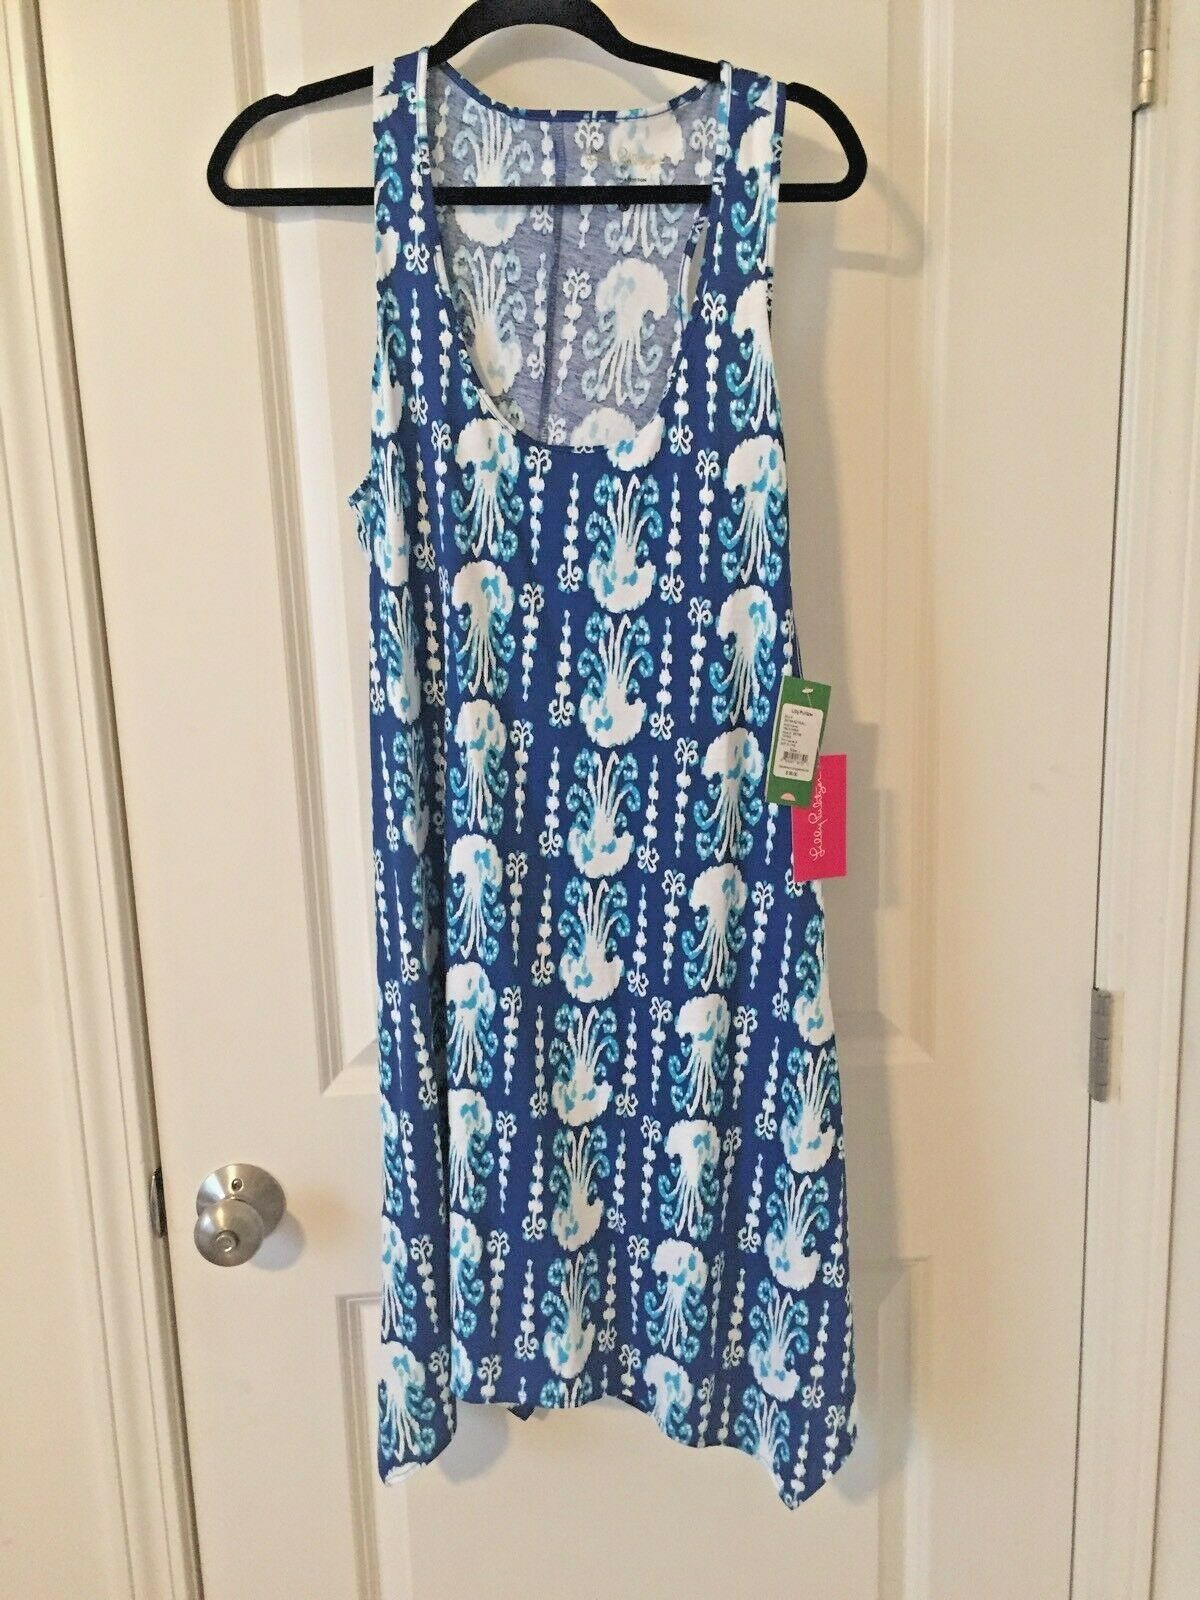 NWT Lilly Pulitzer Indigo Get in Line Melle Dress Large L